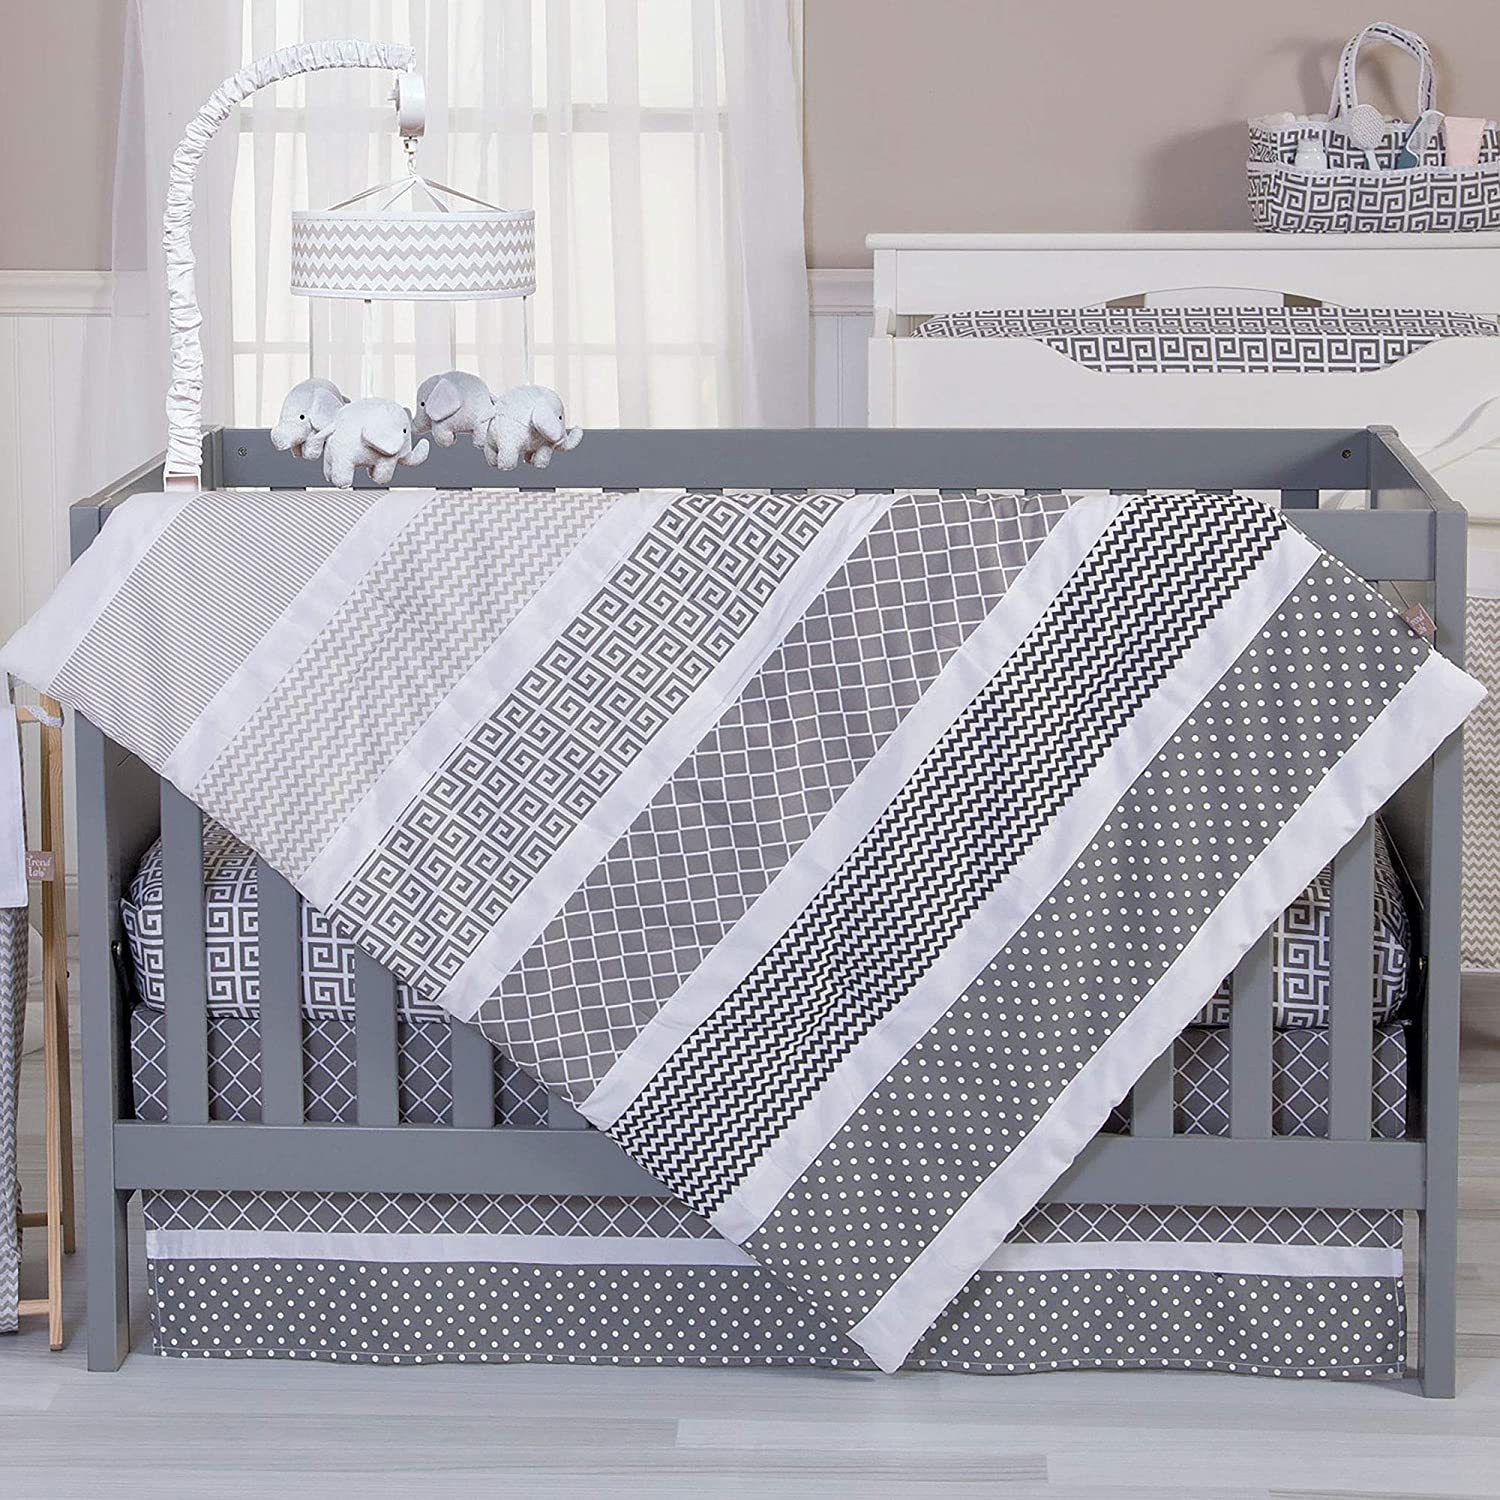 Trend Lab Ombre Gray Baby Nursery Crib Bedding CHOOSE FROM 3 4 5 6 7 Piece Set